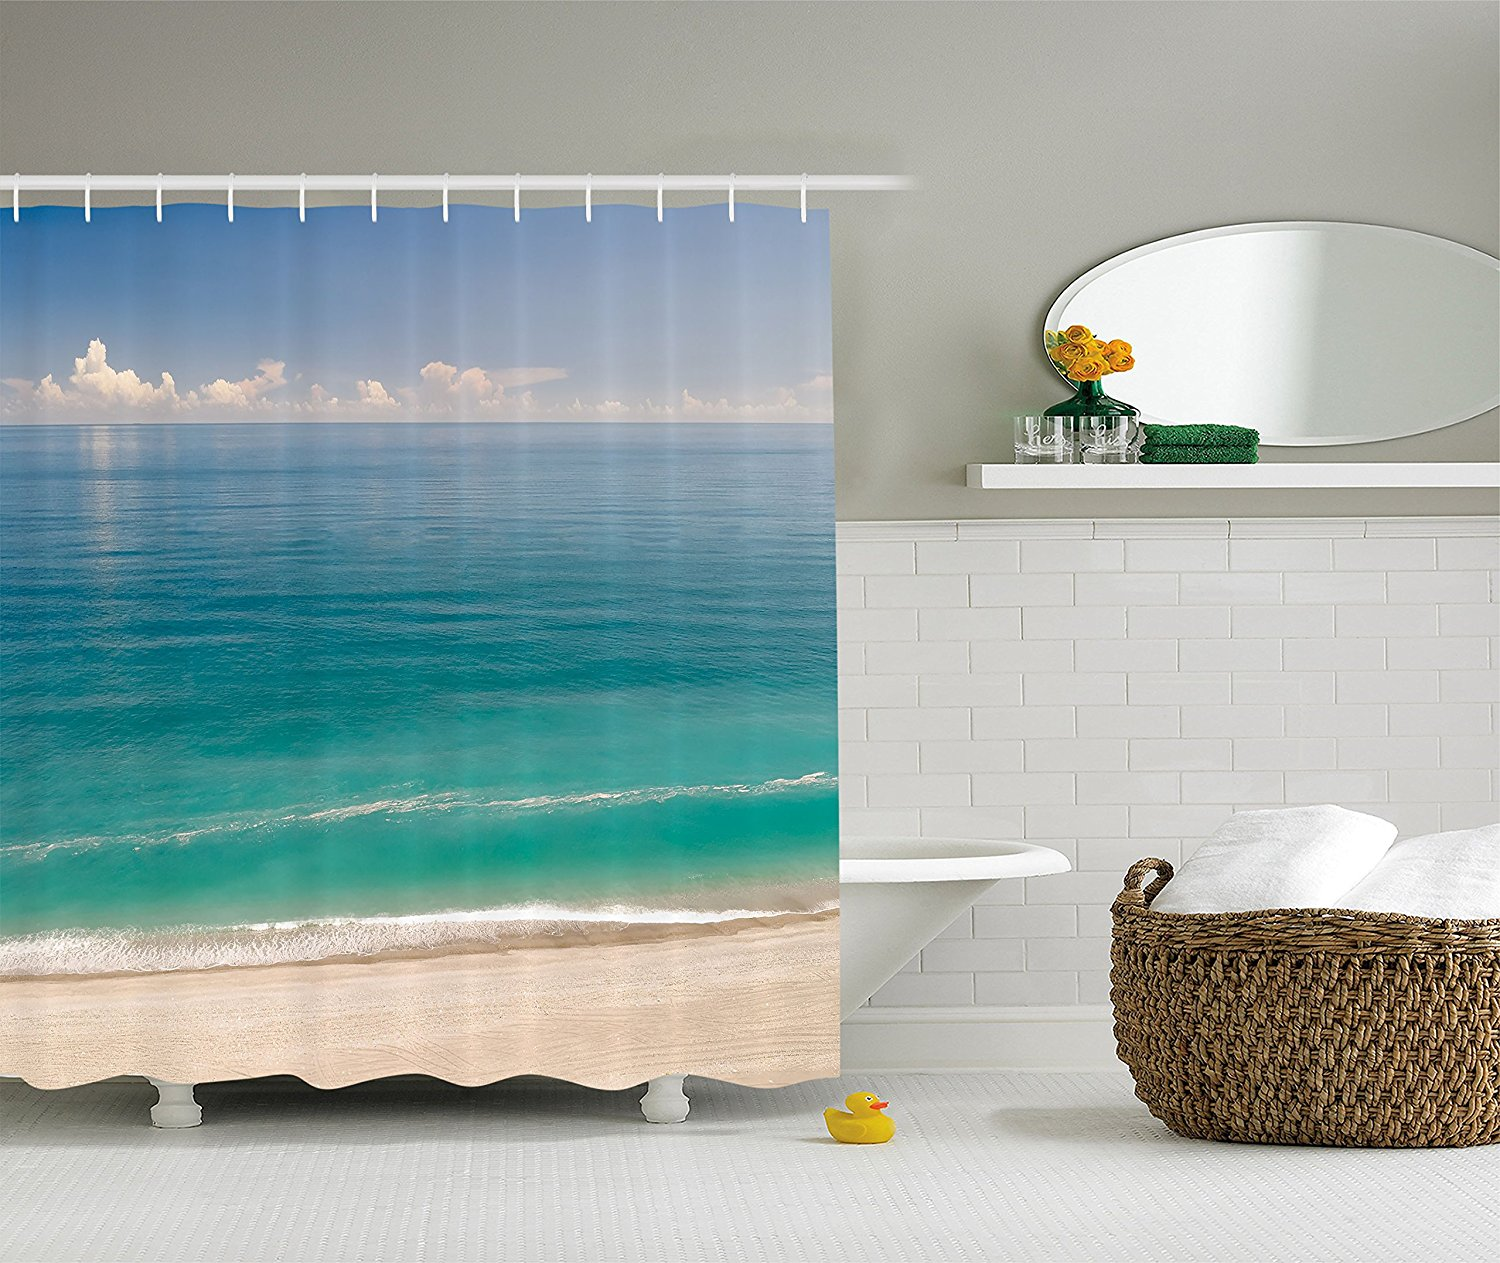 Ocean shower curtains - Surfing Waves Nature Art Ocean Sea Sports Beach Pictures Polyester Fabric Bathroom Shower Curtain Set